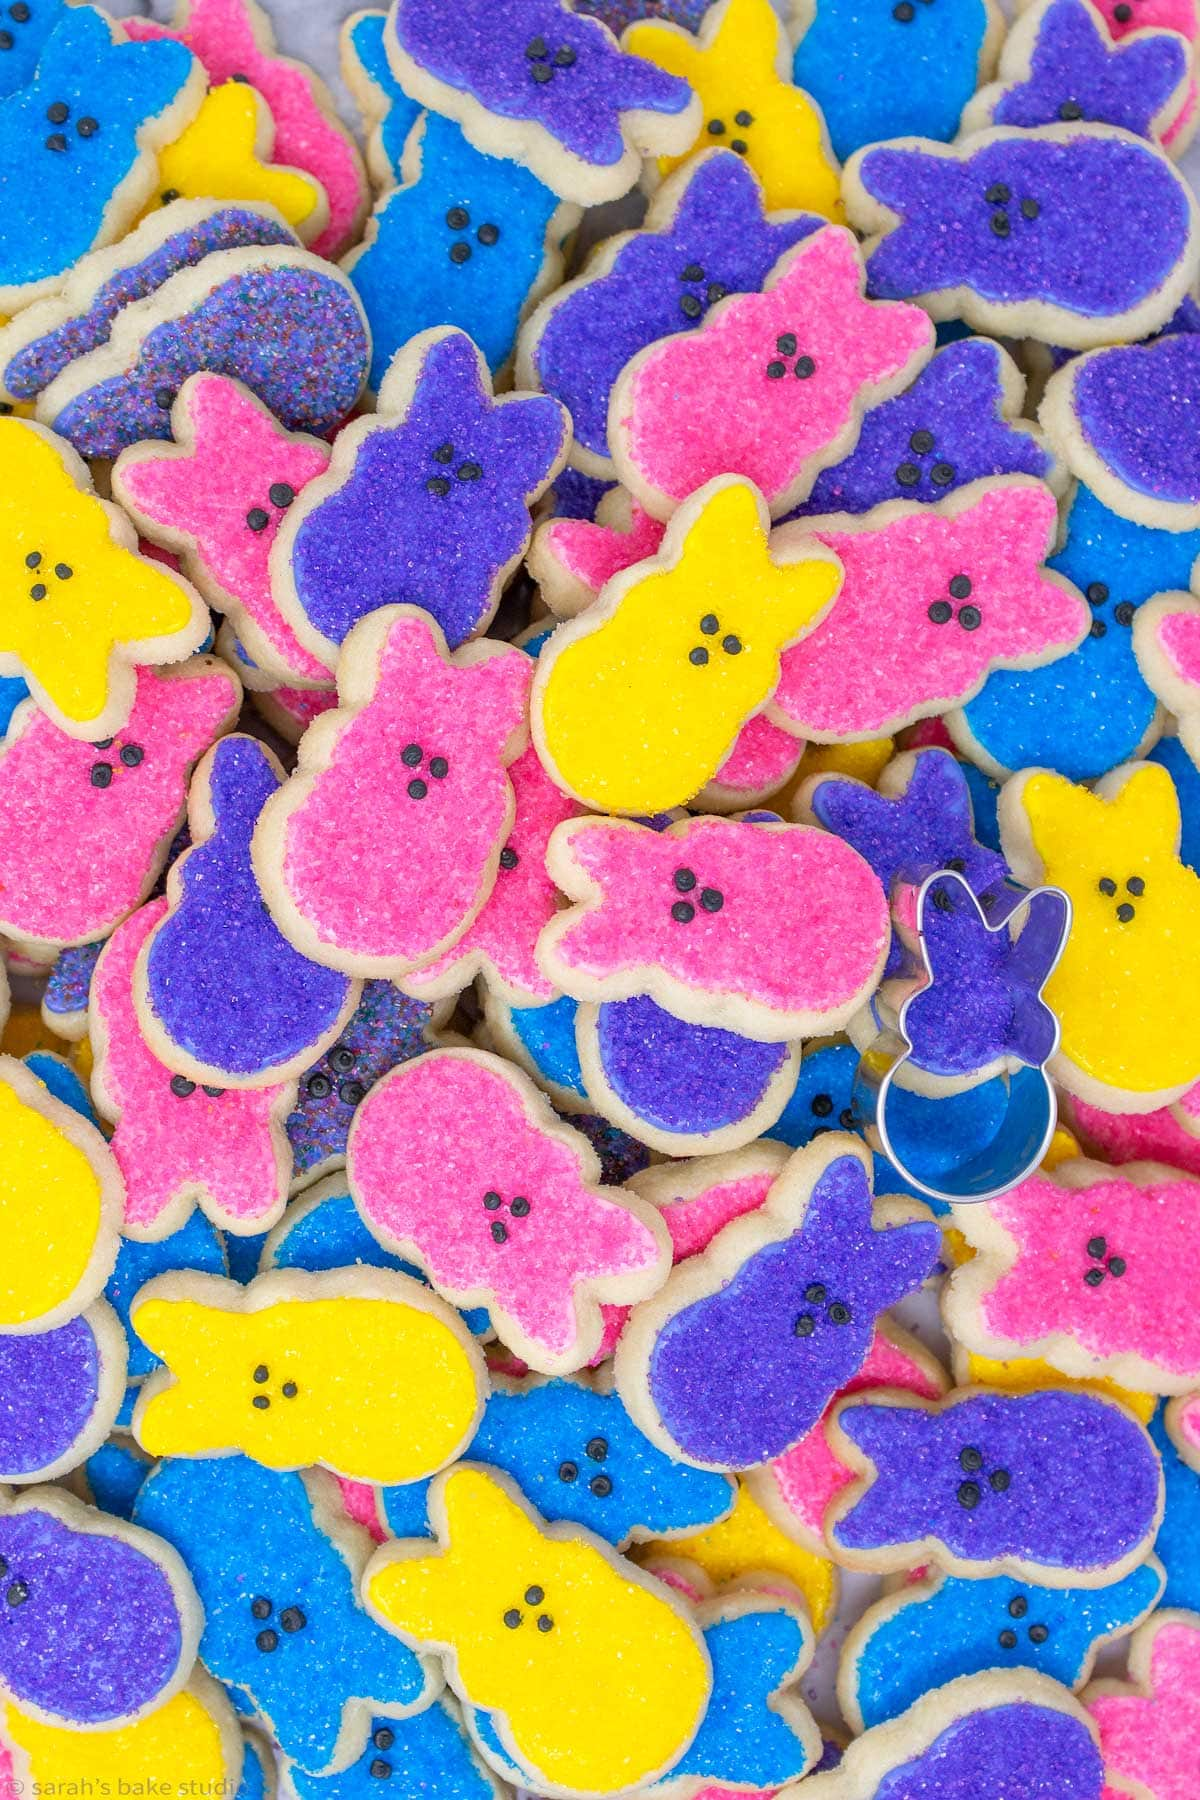 a pile of PEEPS Easter Bunny Sugar Cookies with the PEEPS cookie cutter